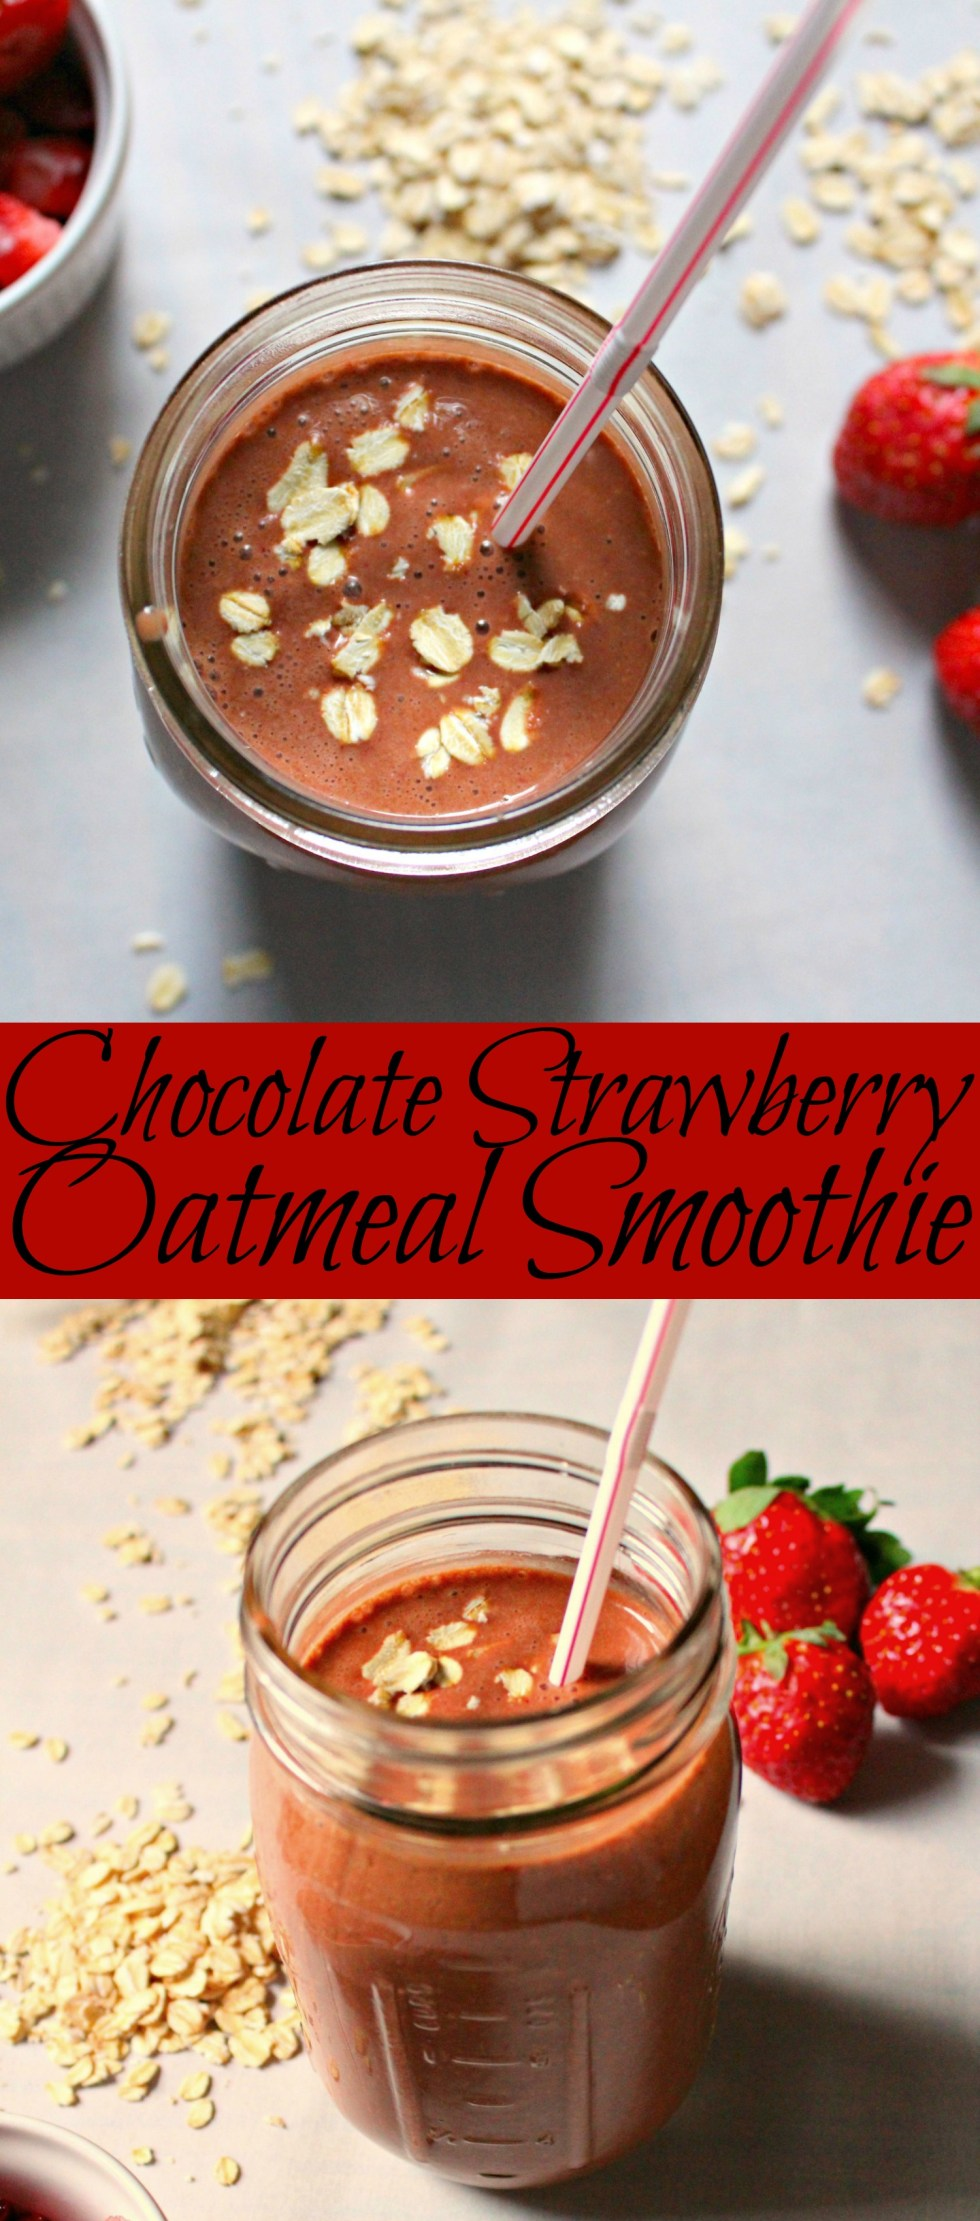 chocolate strawberry oatmeal smoothie